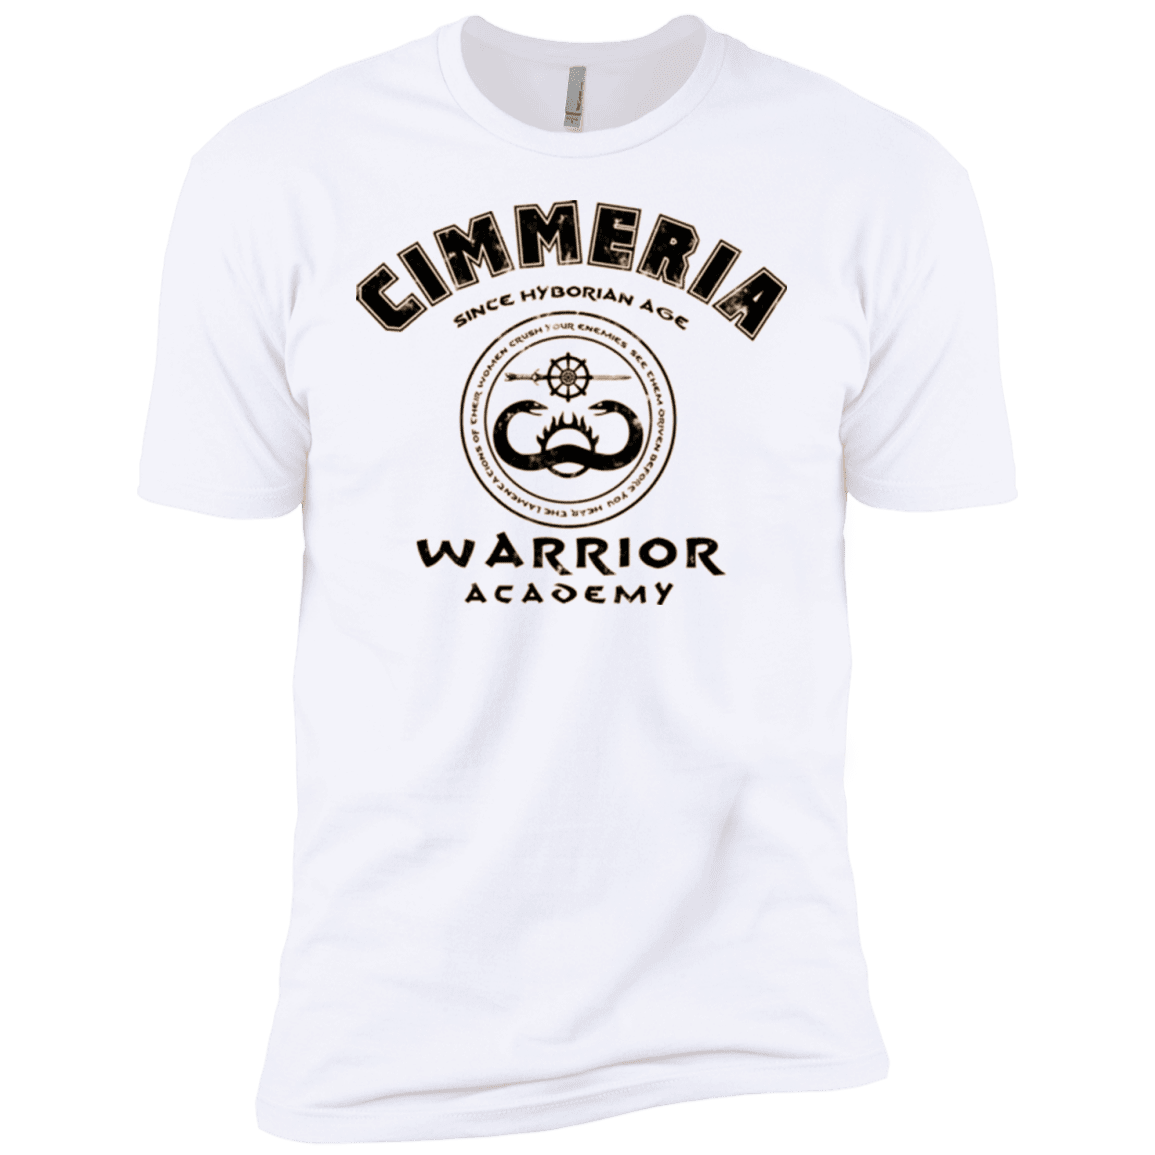 Crimmeria Warrior academy Boys Premium T-Shirt